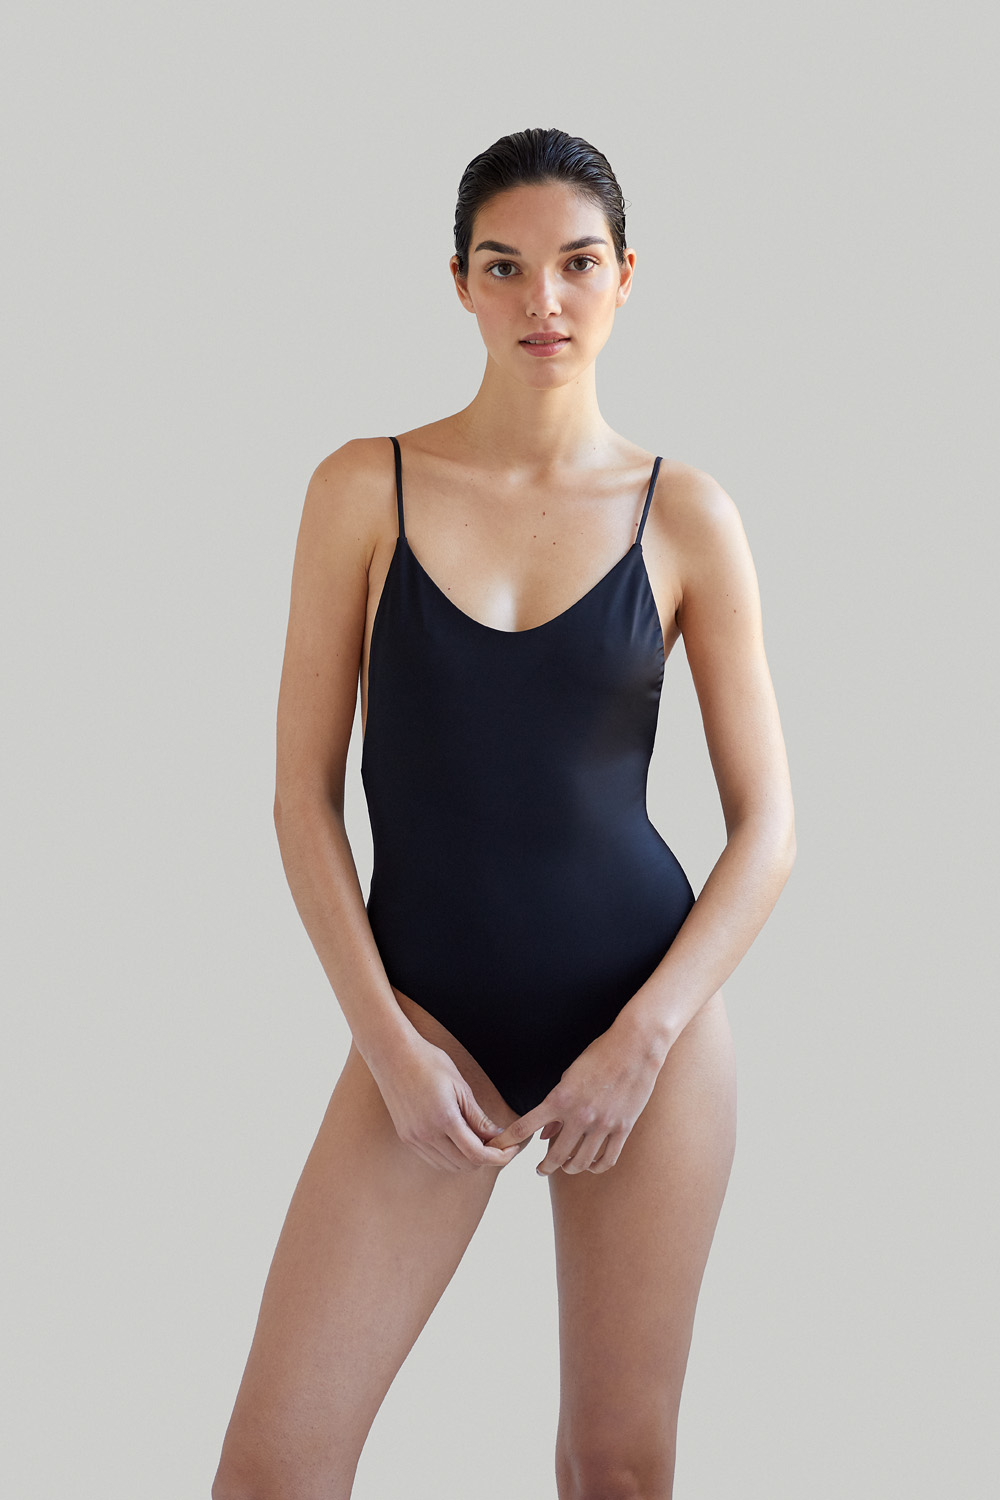 Sustainable Luxury Swimwear / Ropa de baño sostenible, eco swimsuit / bañador ecológico. Alona onepiece in blacksands, by NOW_THEN